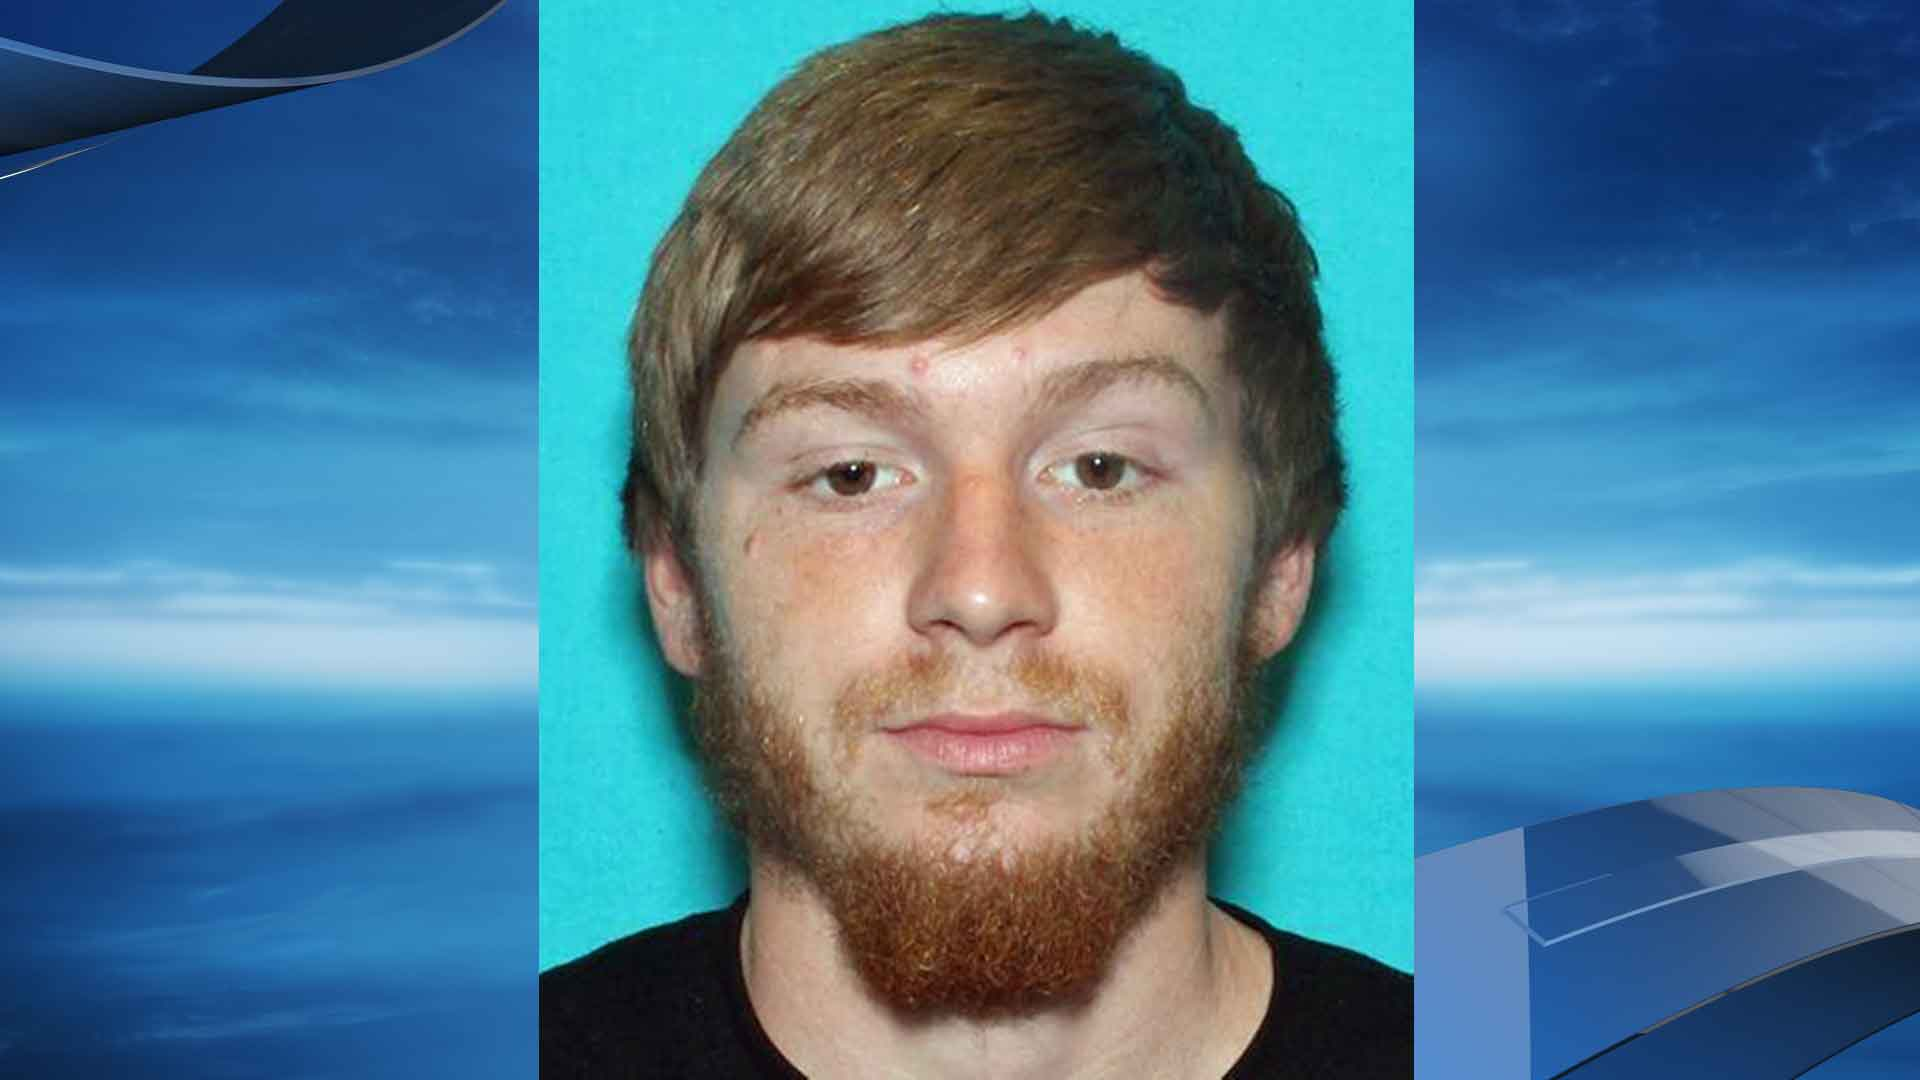 Cullen Shane Pate, 22, was last known to be in the Cedar Park and Austin area earlier this week. And he's likely staying in the hotel/motel corridor along I-35. (Photo courtesy: Lone Star Fugitive Task Force)